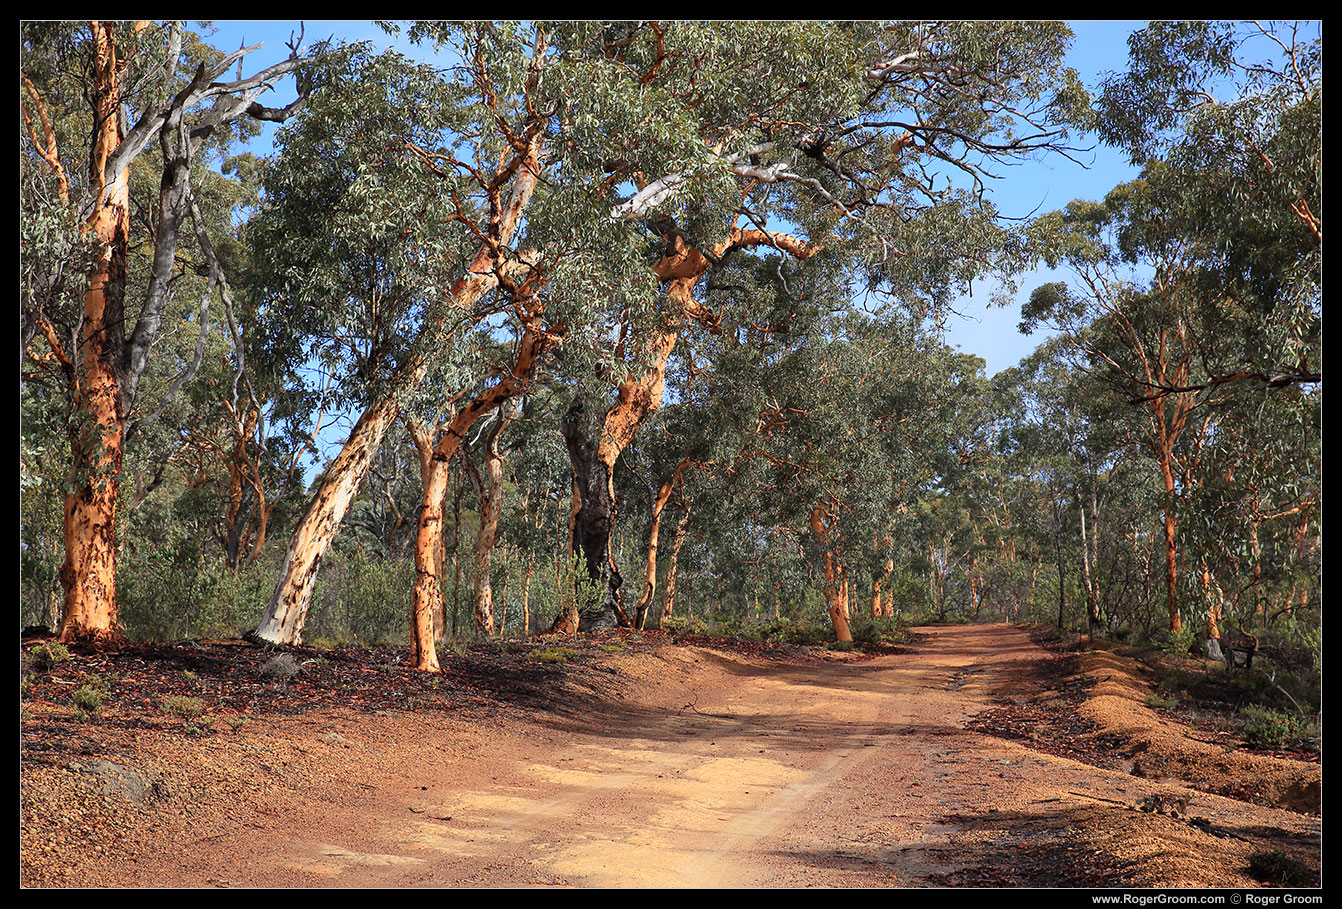 The road winding in to Mt Observation, between Perth and York in the Western Australian Wheatbelt region.